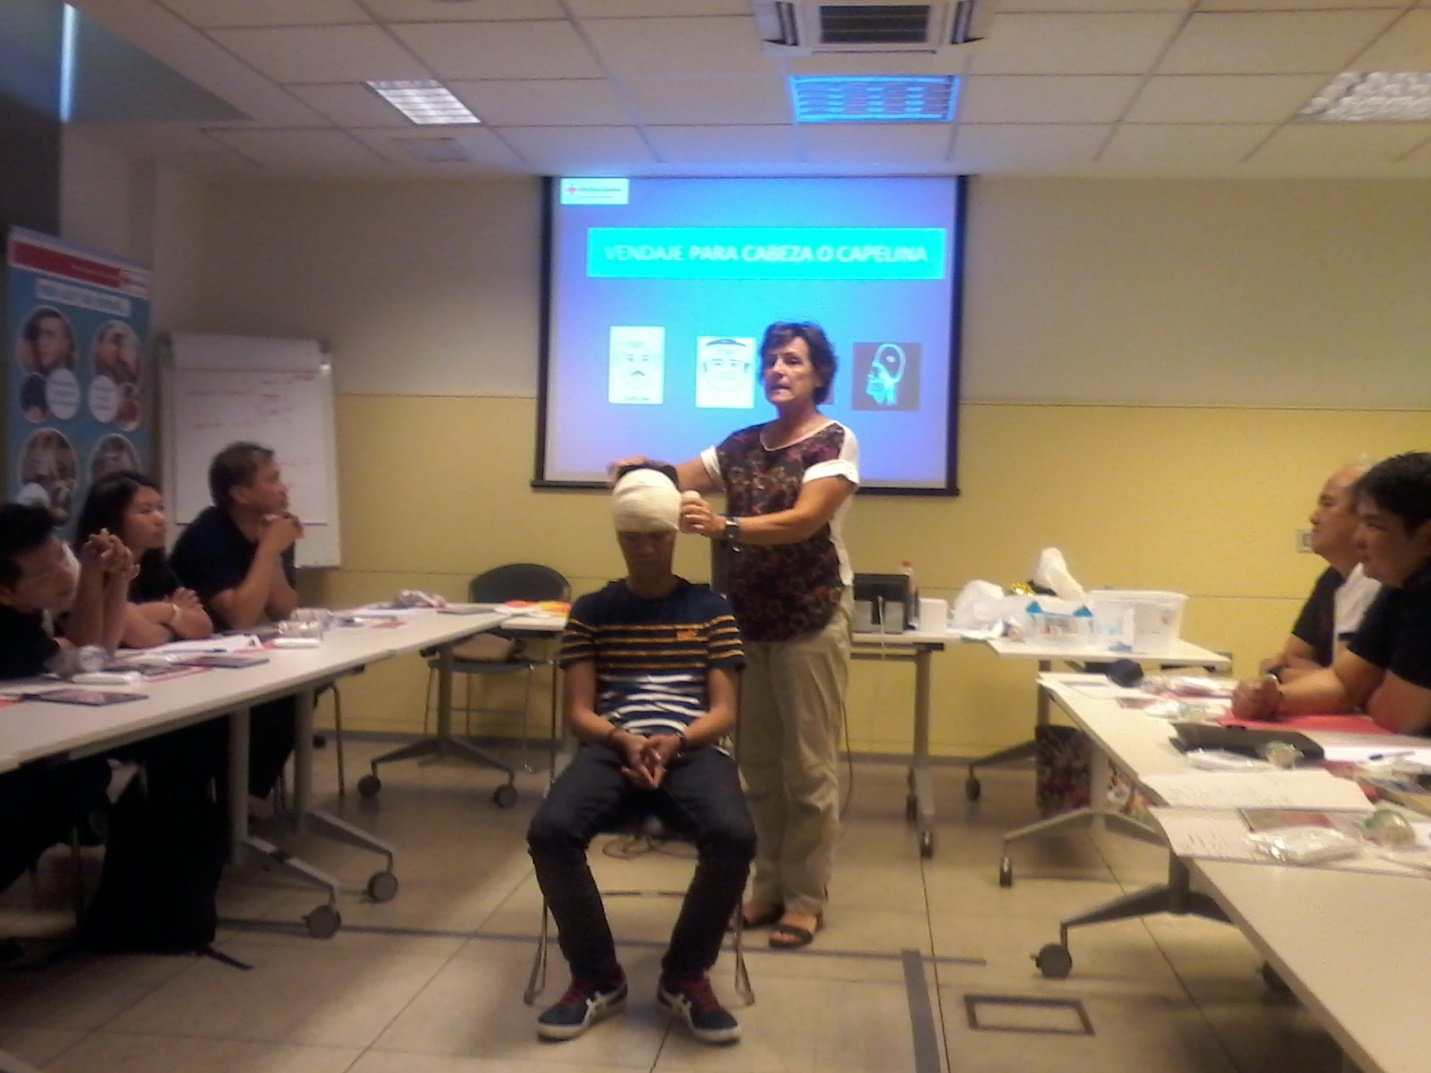 Esperanza Gemez demonstrates how to do a head bandage.